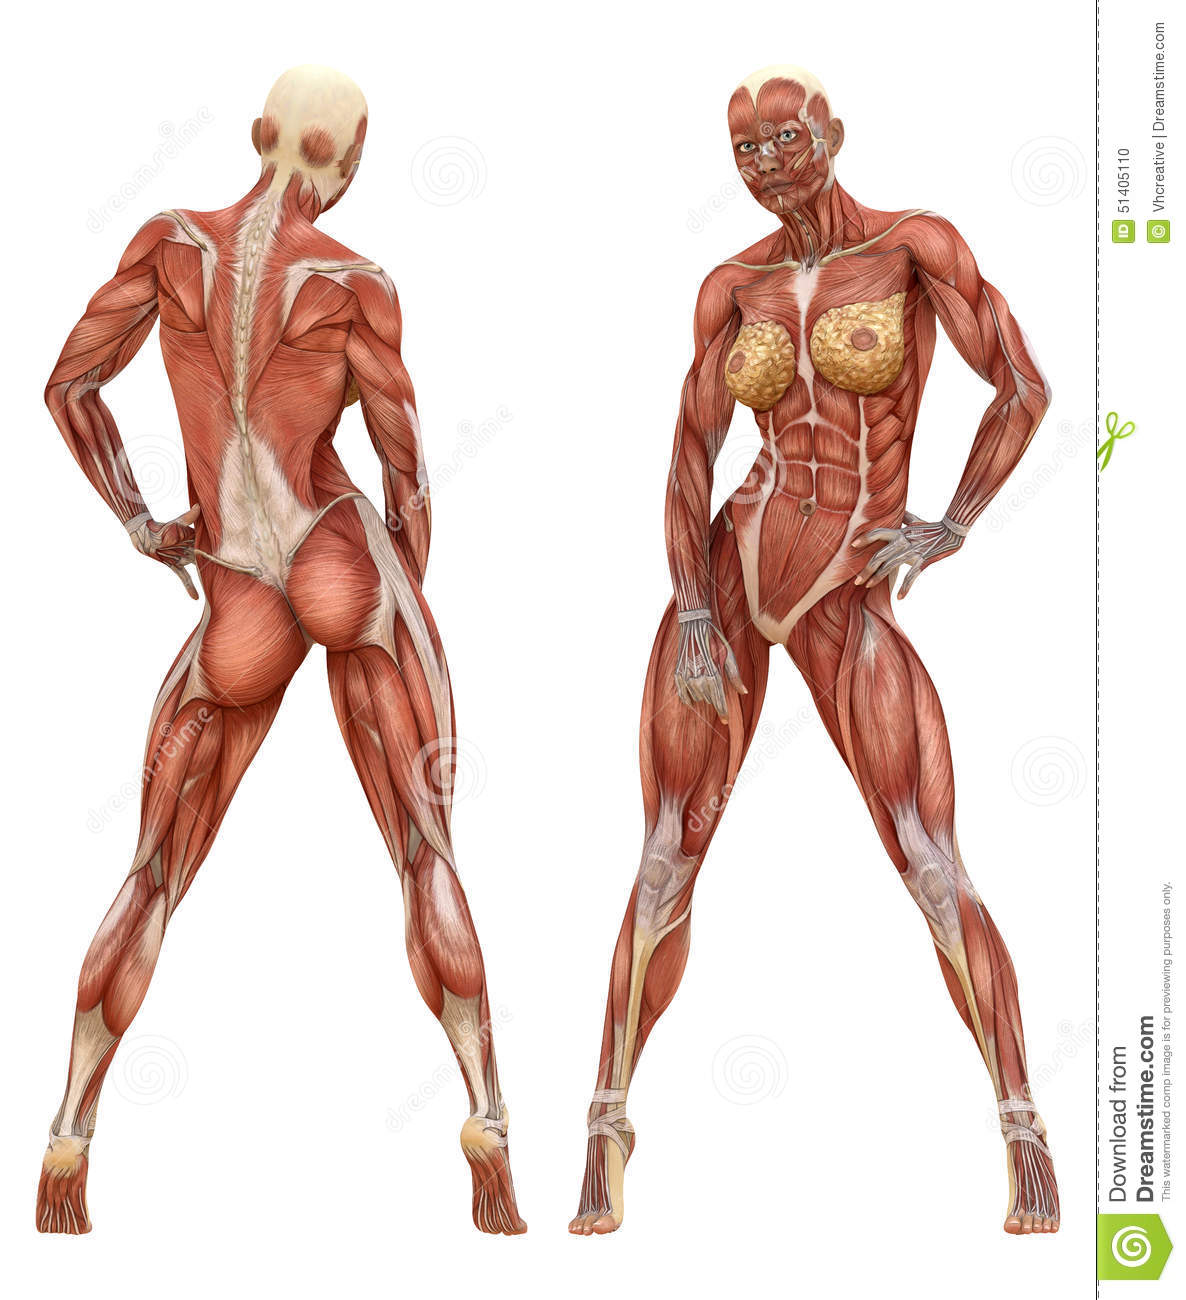 Female Muscular System Anatomy Stock Photo Illustration Of Health